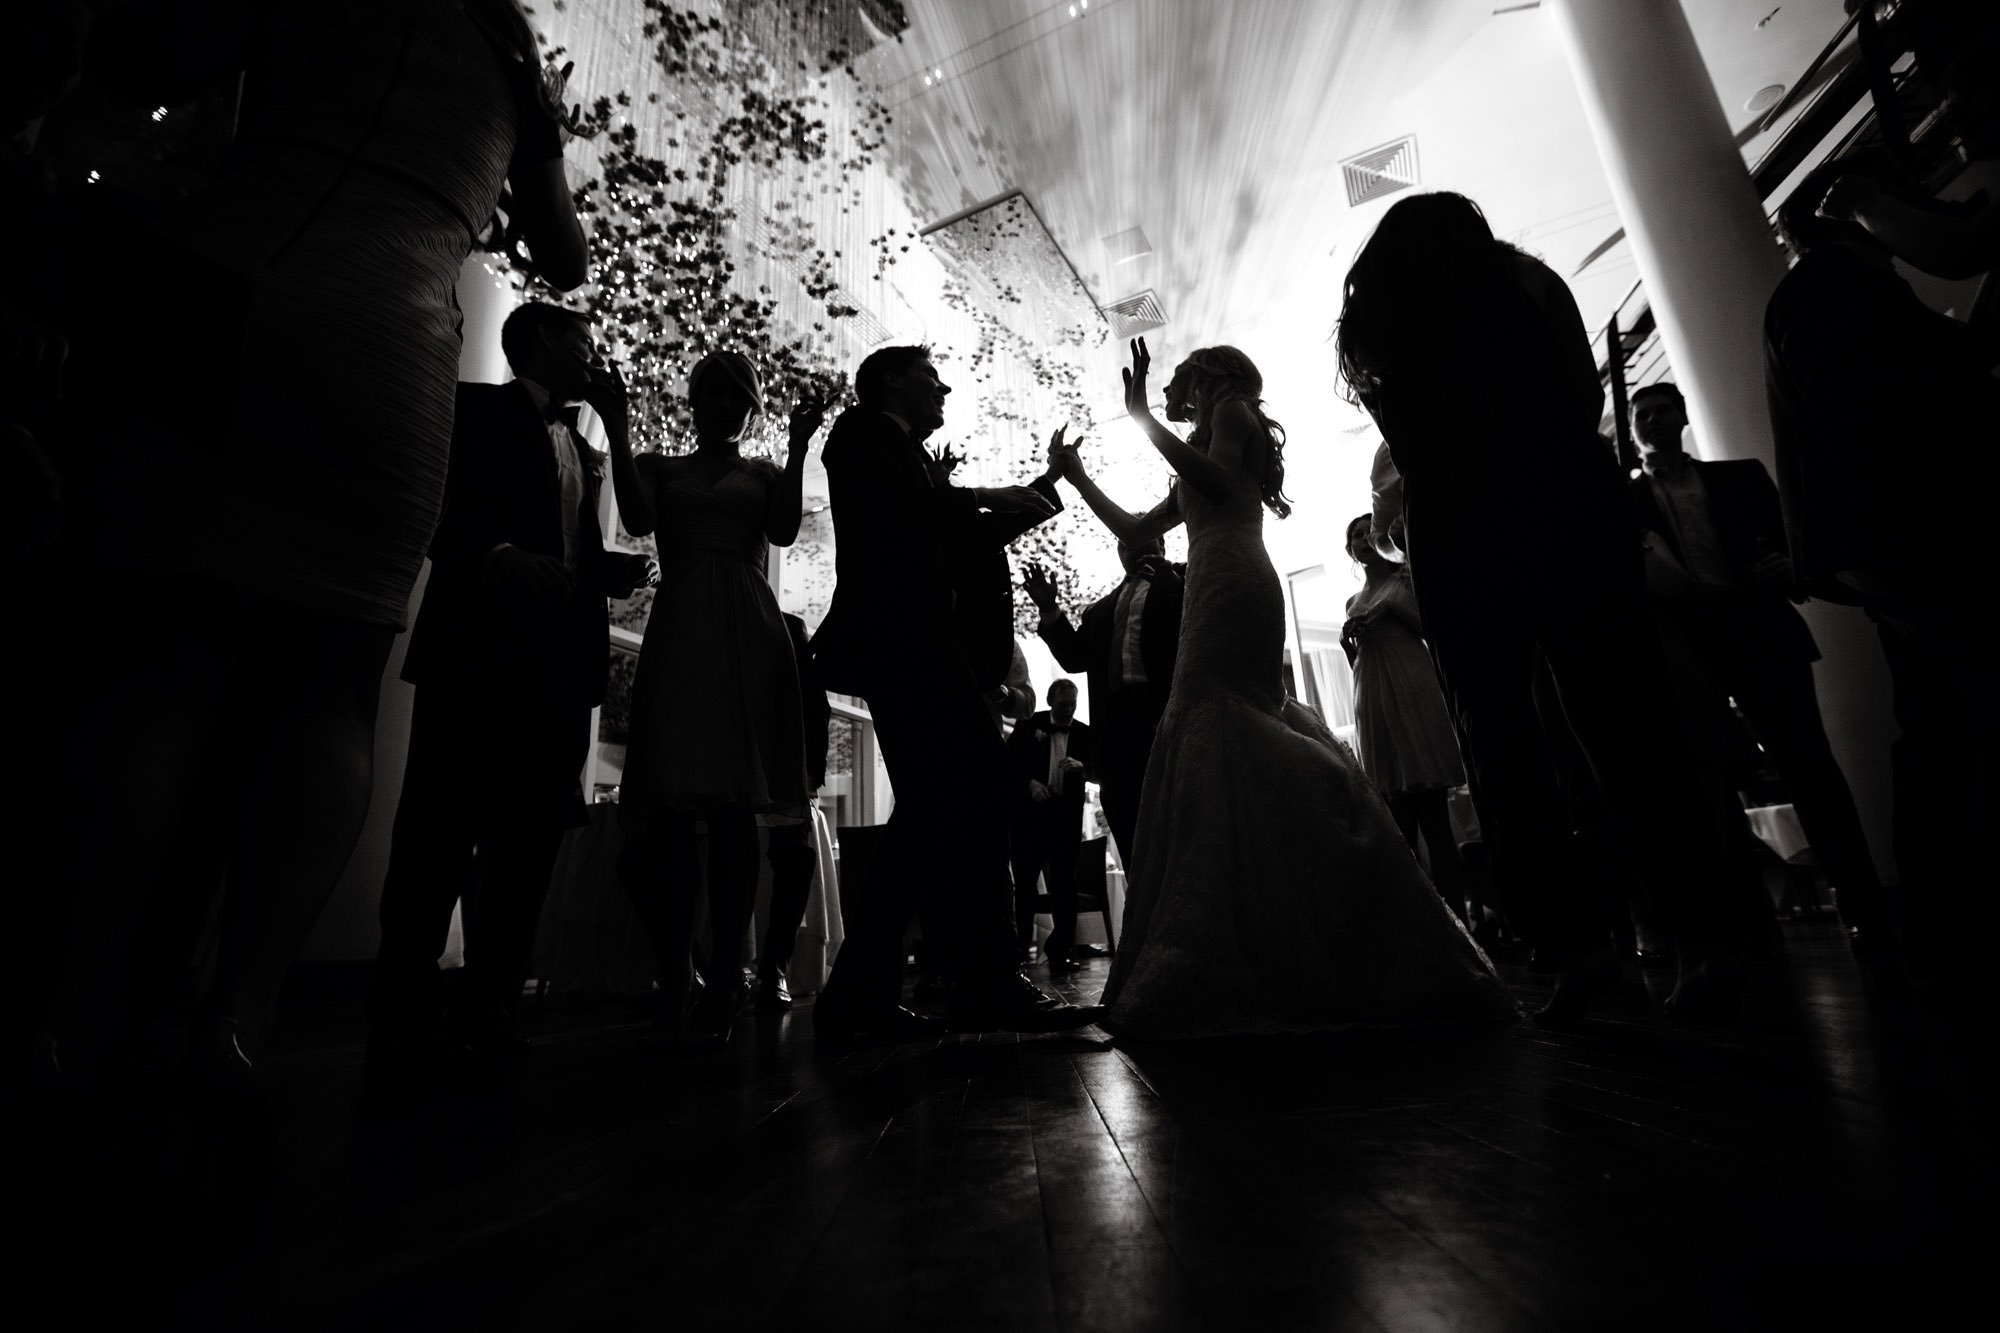 Guests dance during the wedding reception.